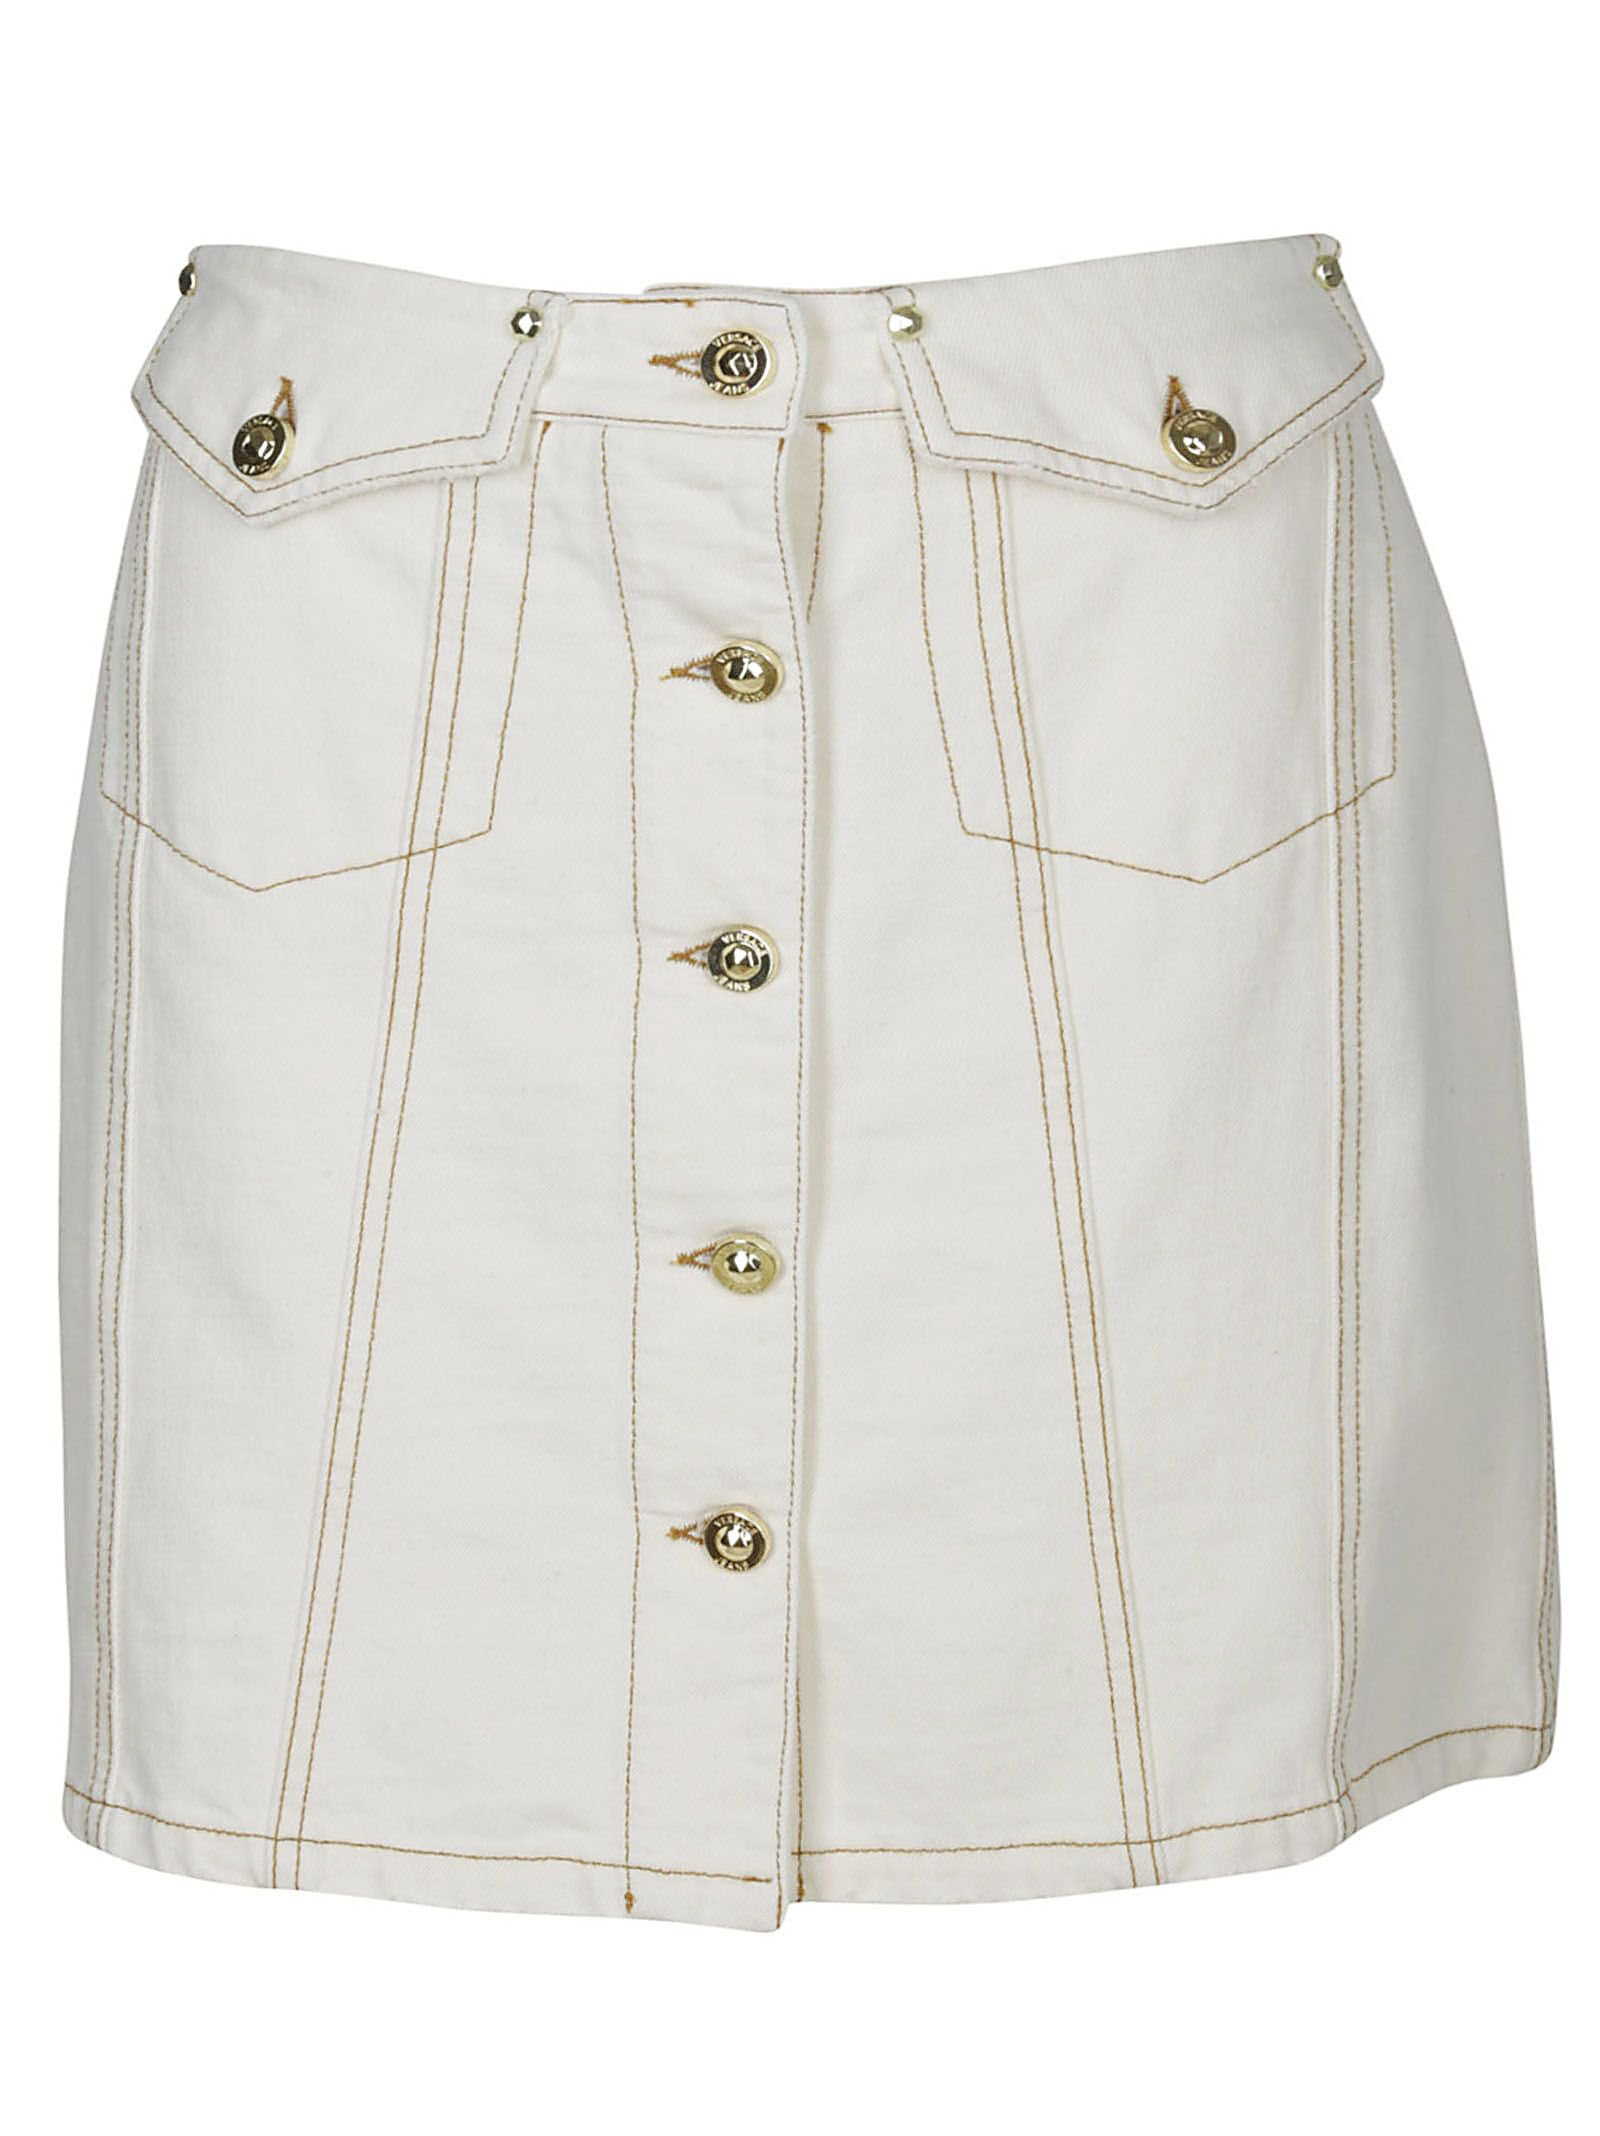 Versace Jeans Buttoned Mini Skirt